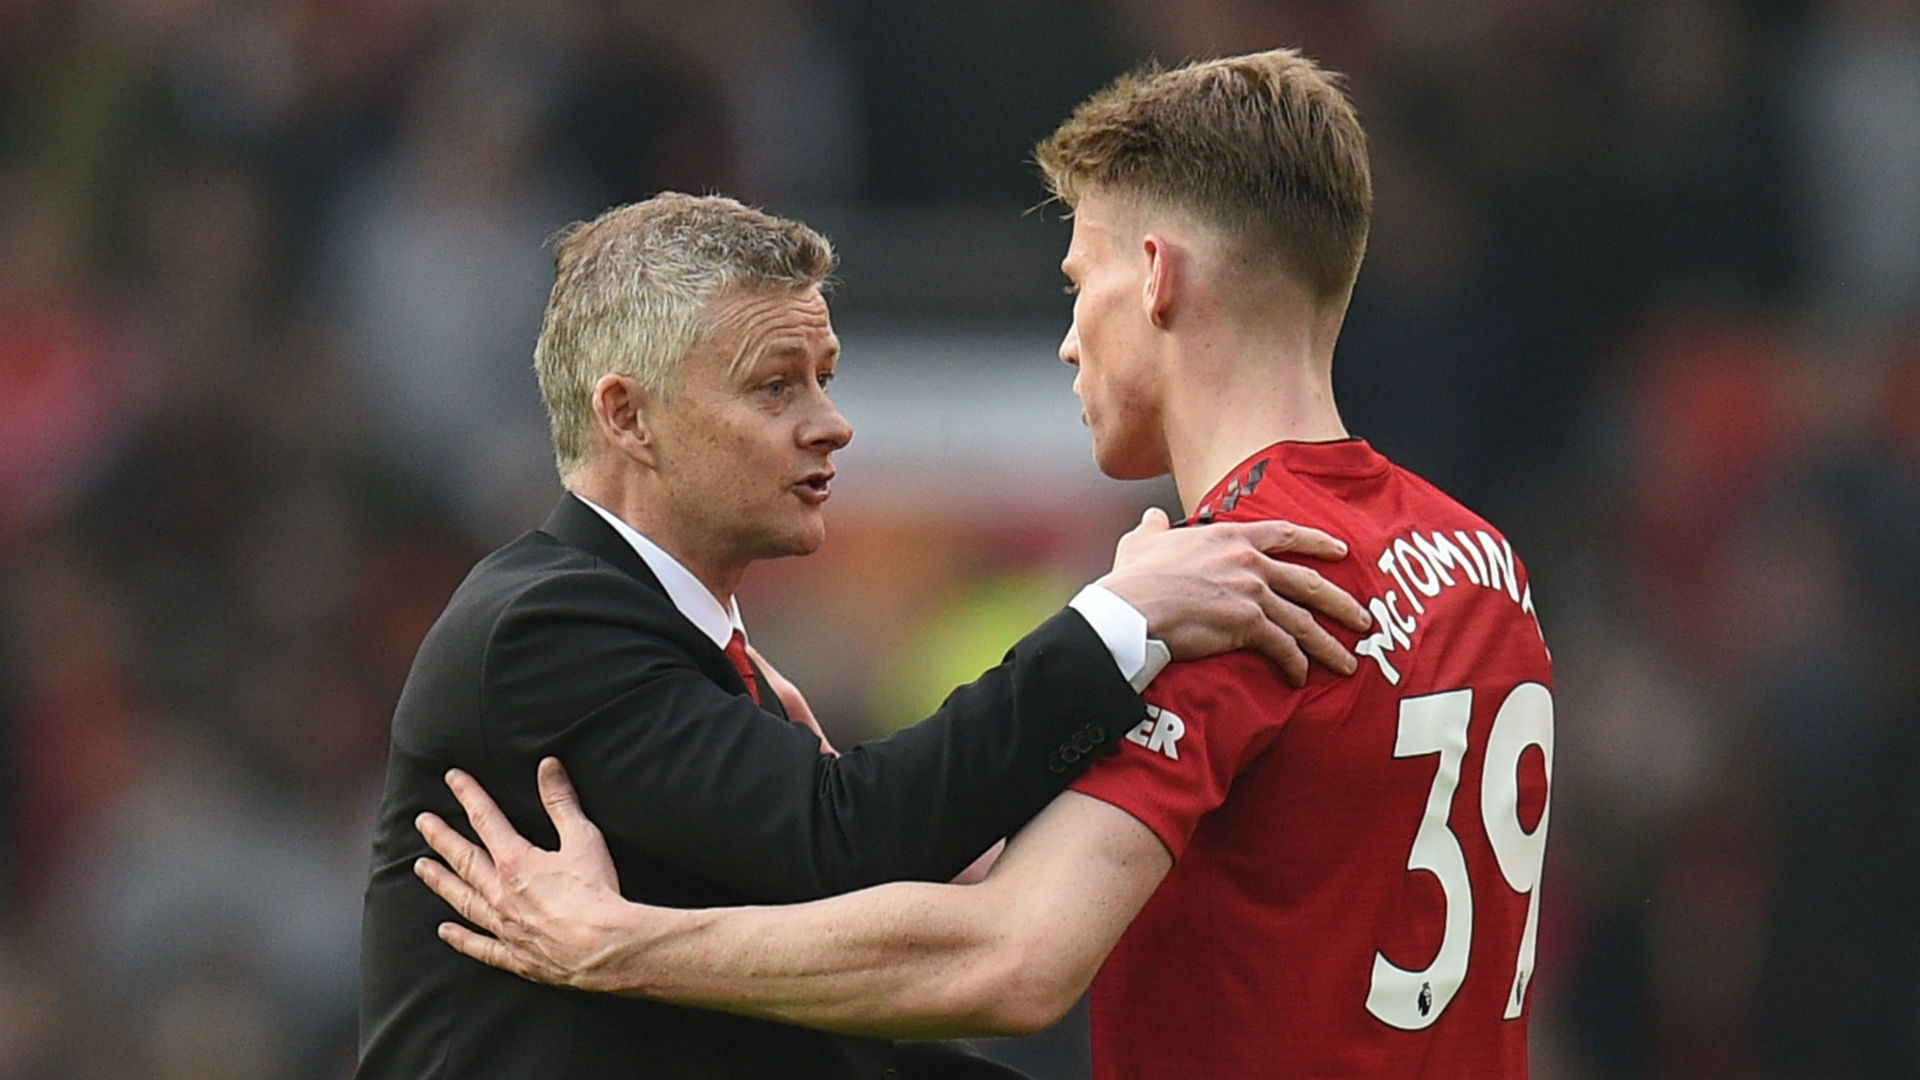 Debating the future of Man United's Ole Gunnar Solskjaer